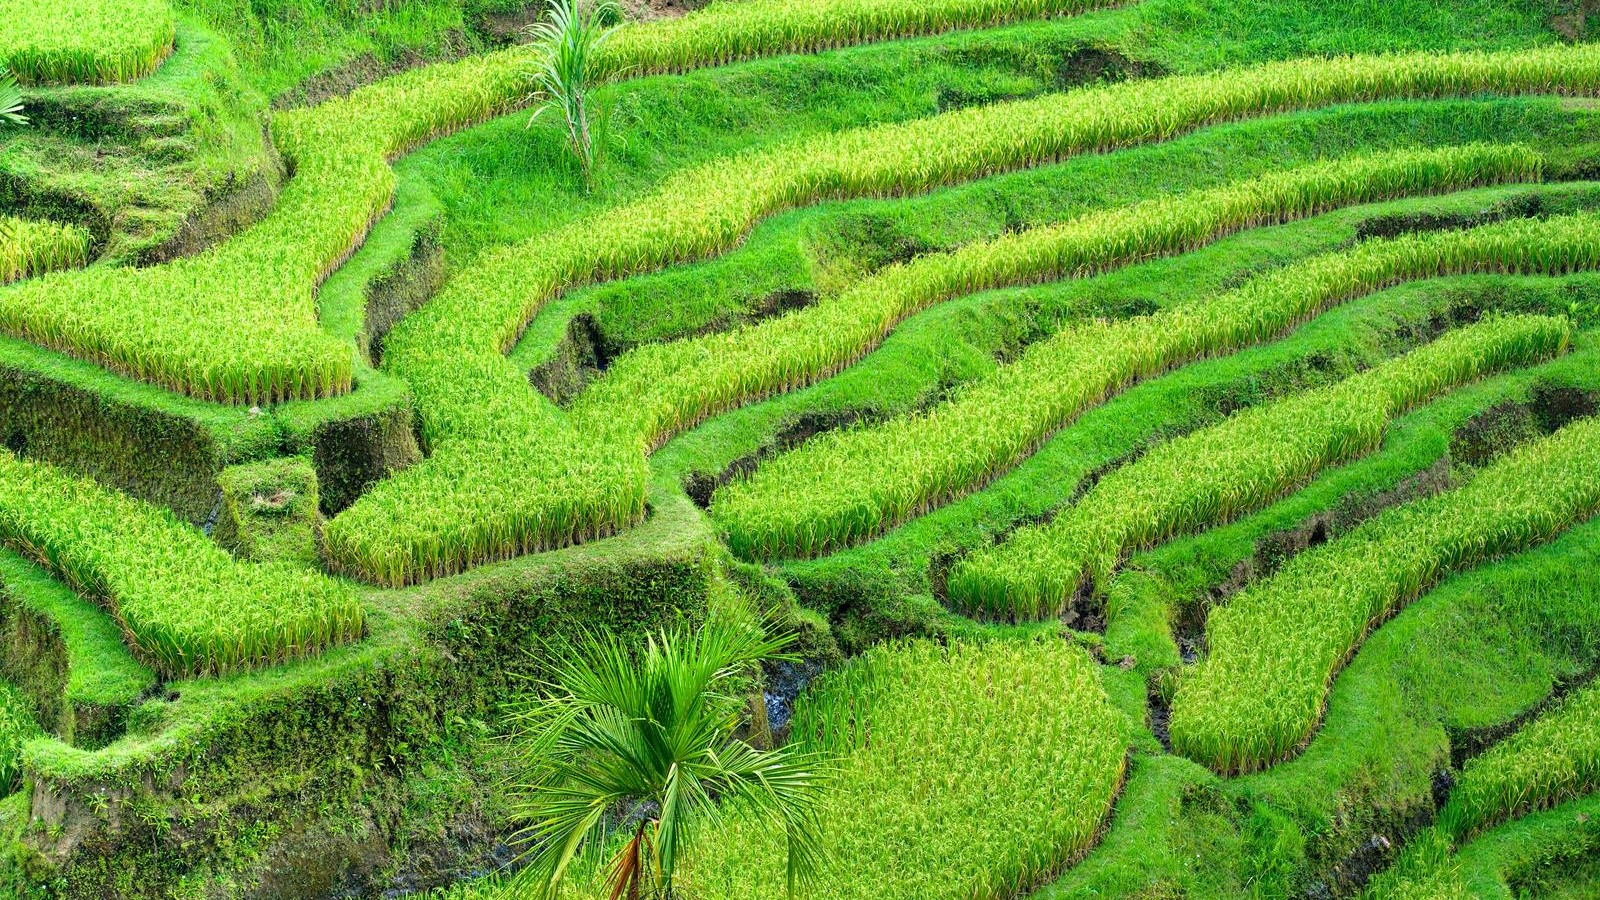 Amazing view of the Rice Terrace field, Ubud, Bali,  Indonesia.